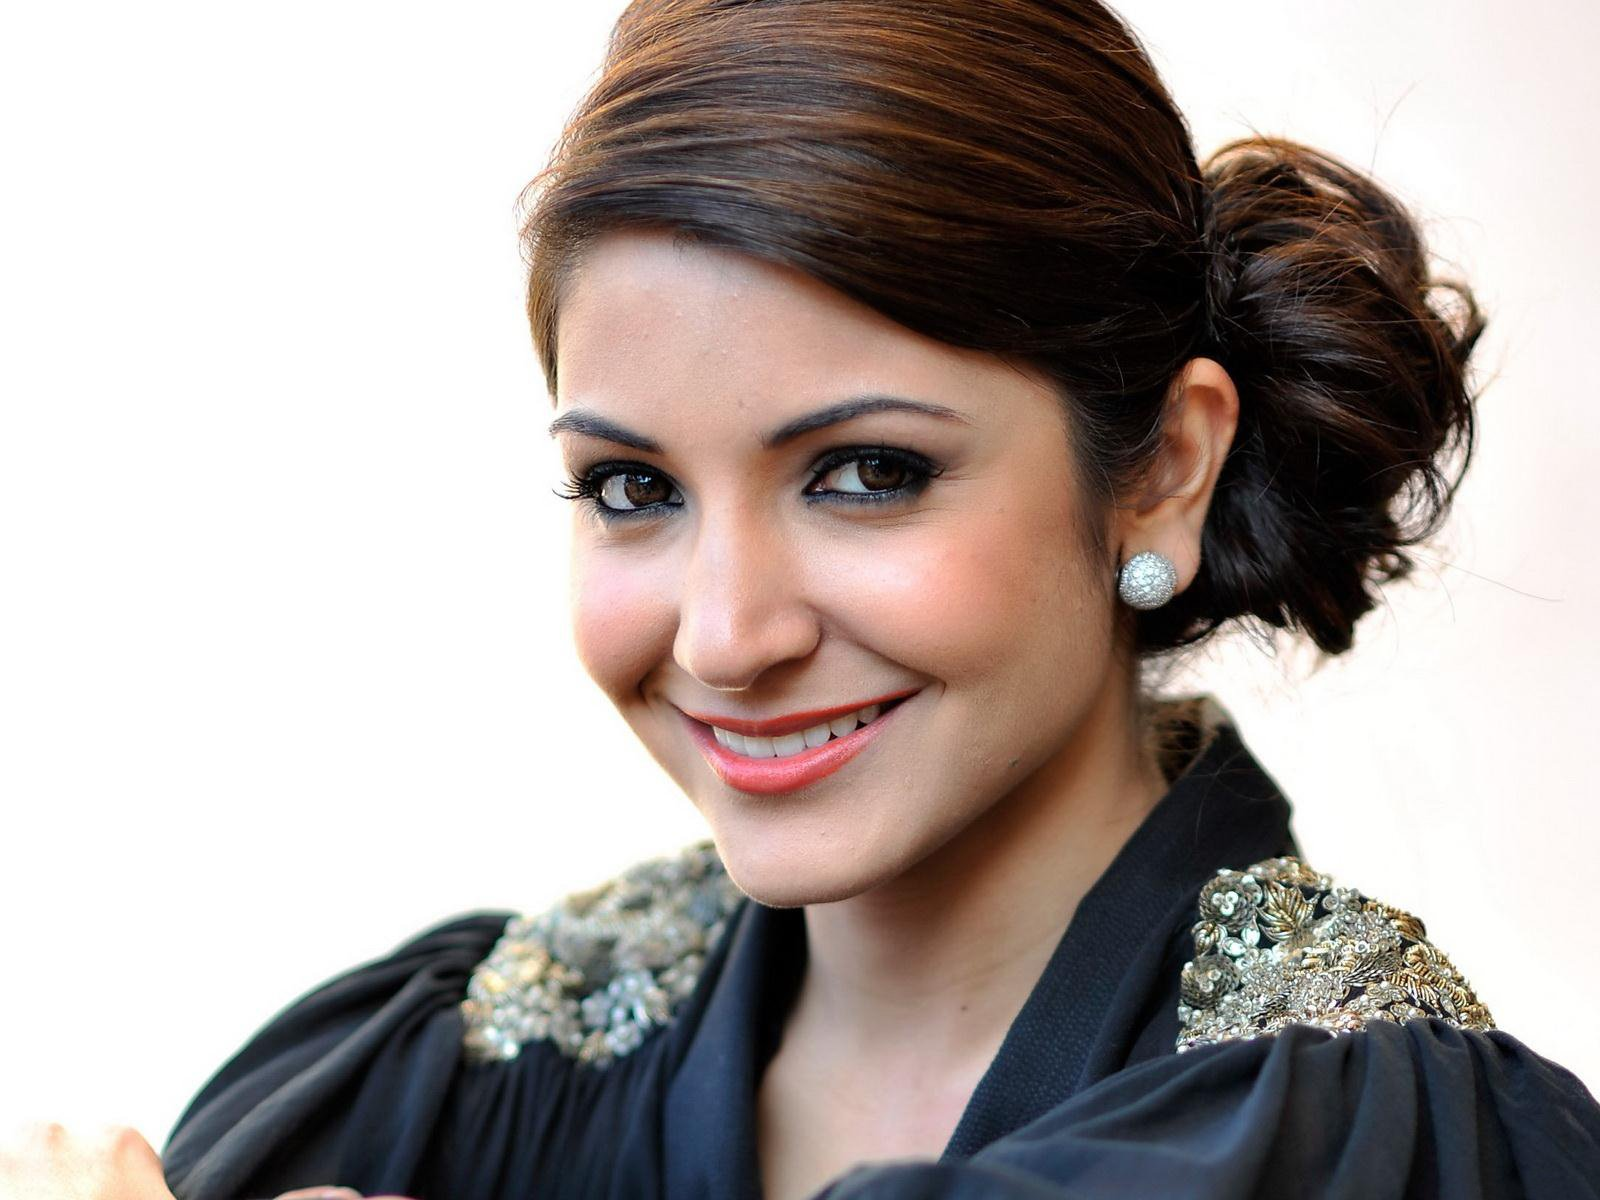 beautiful anushka sharma smile face desktop mobile background free